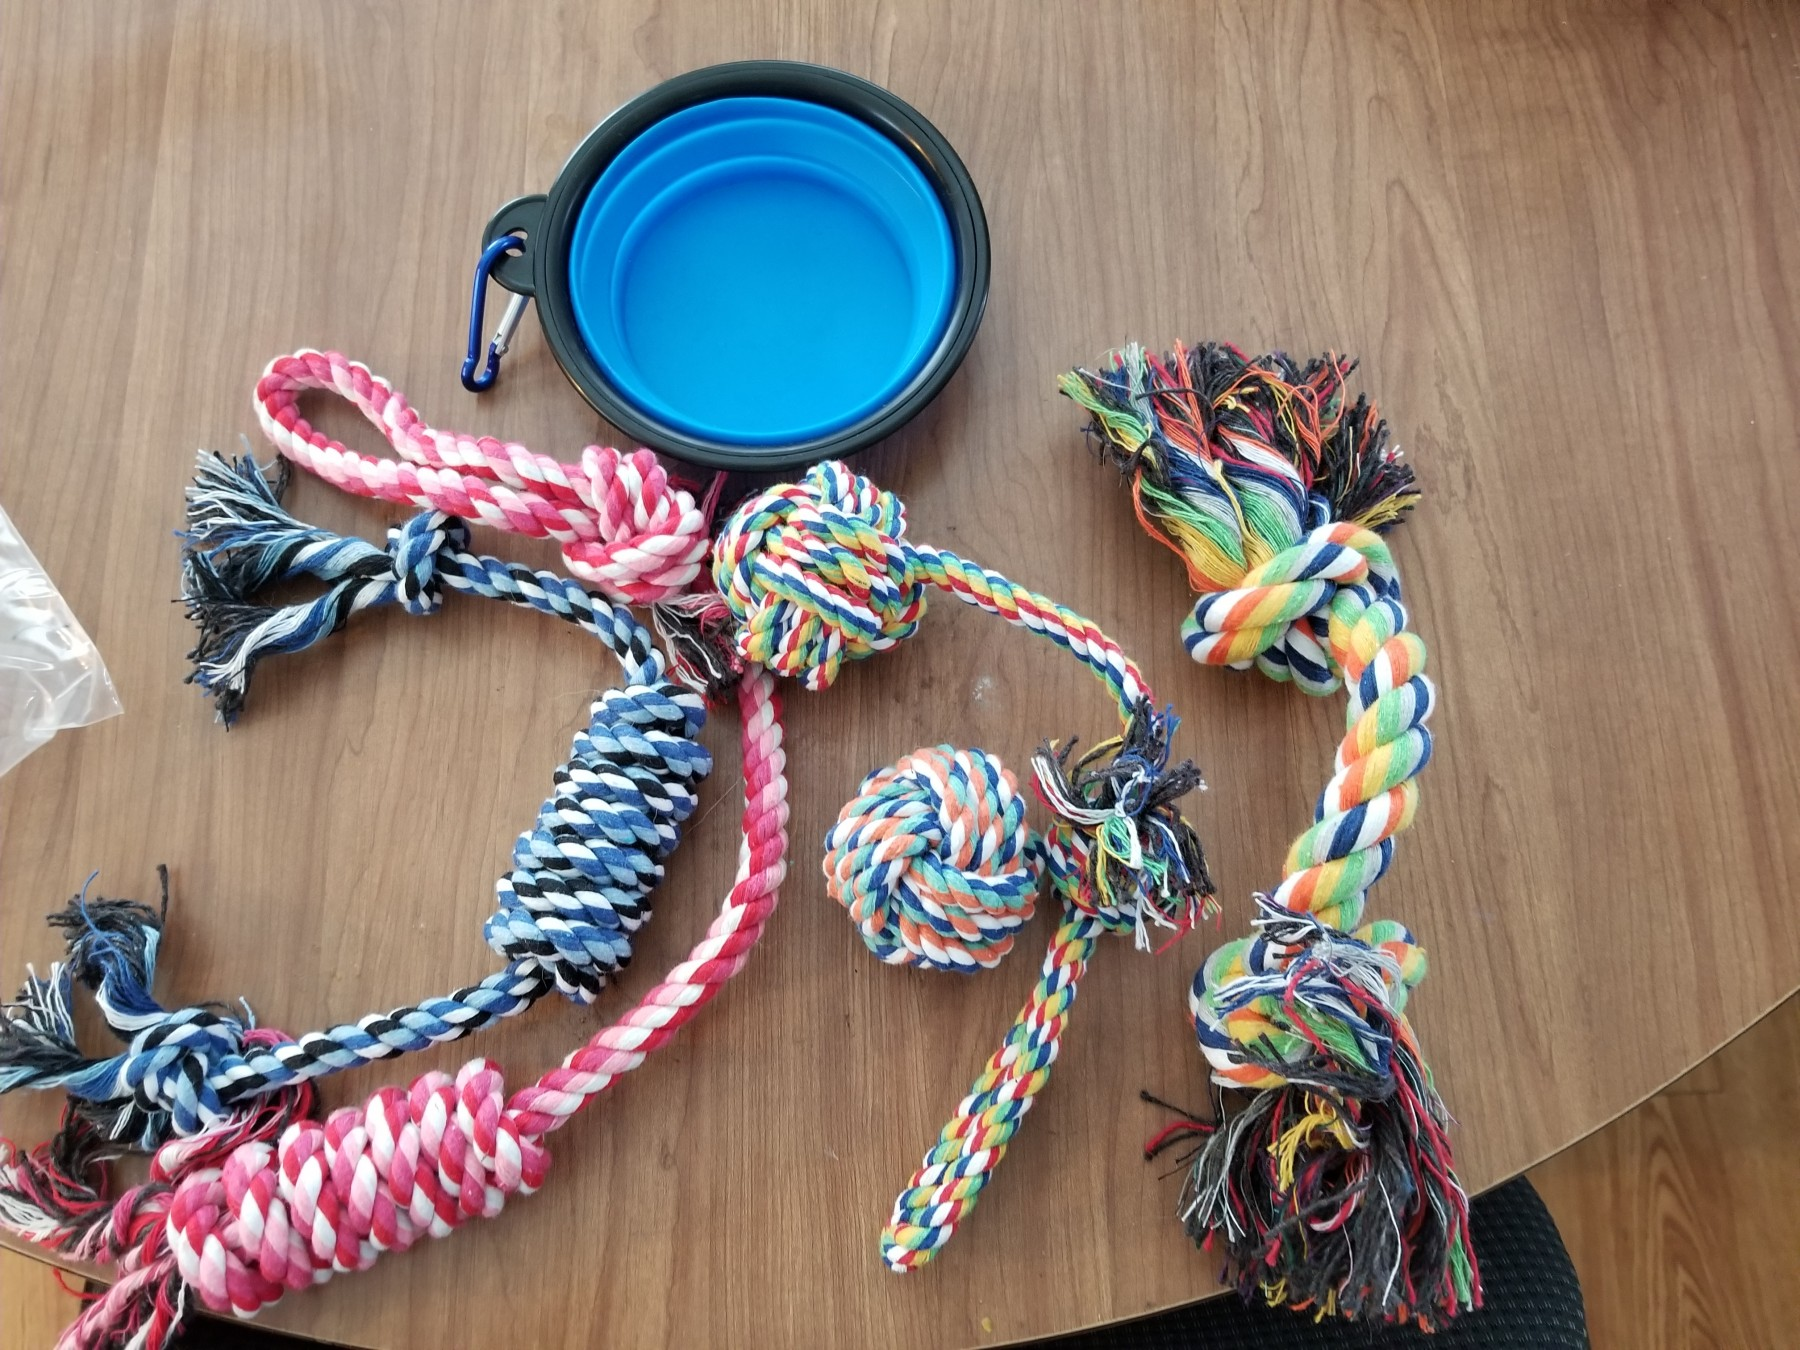 Dog Toys and Travel Water Bowl